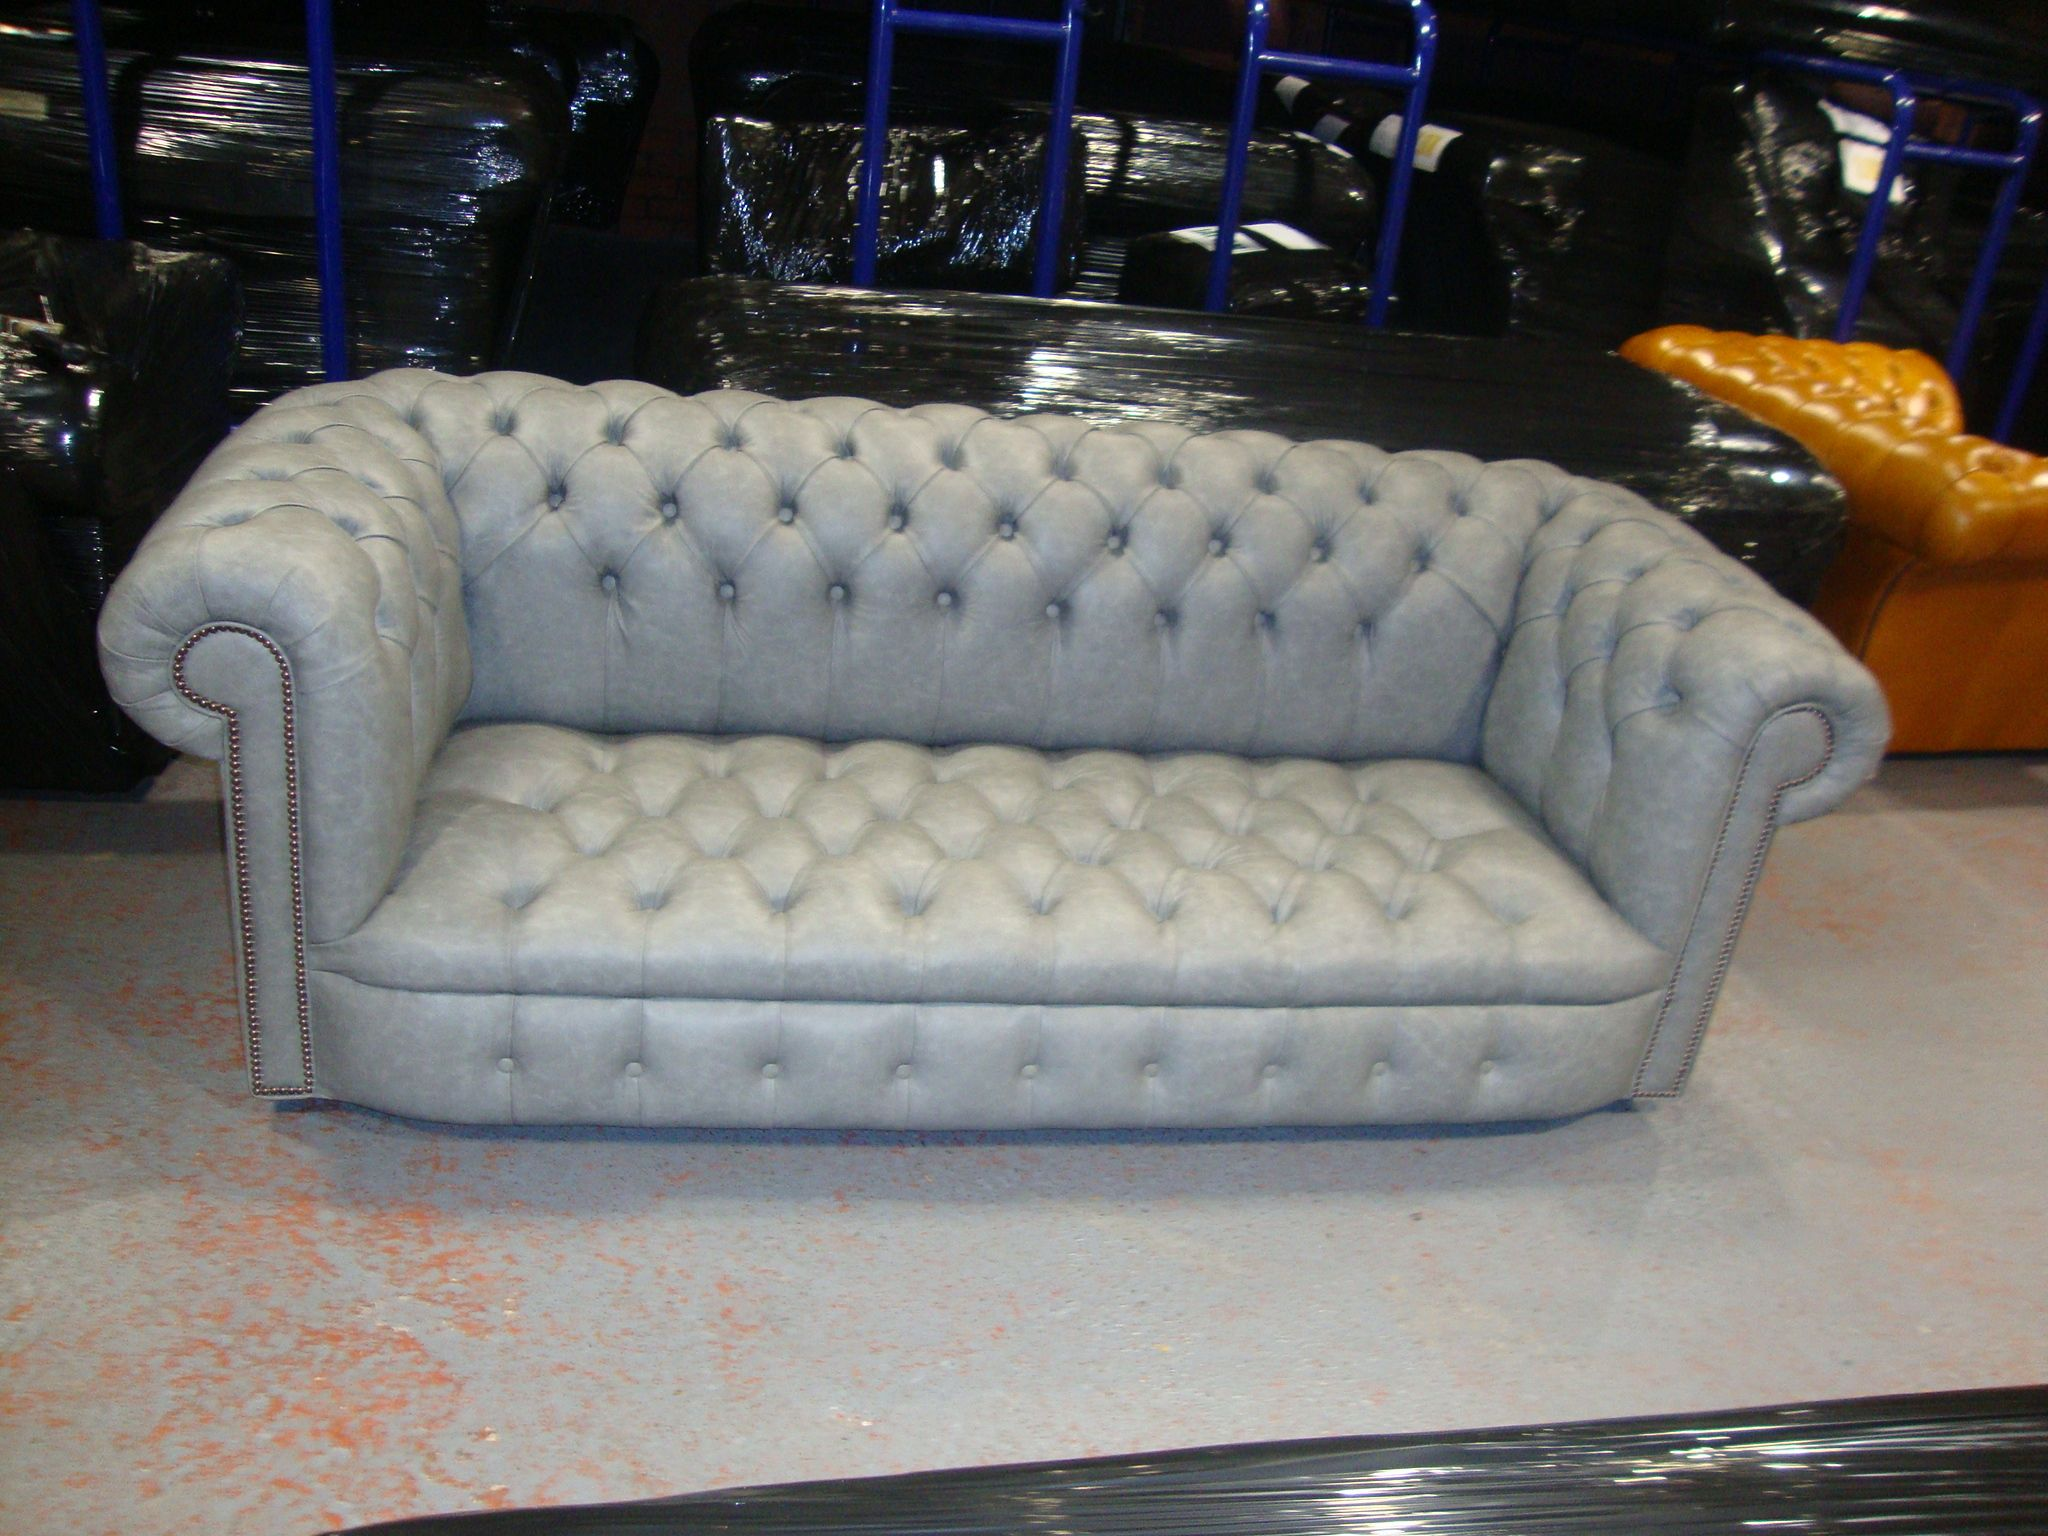 Kensington Chesterfield 3 Seater Sofa In Light Grey Leather